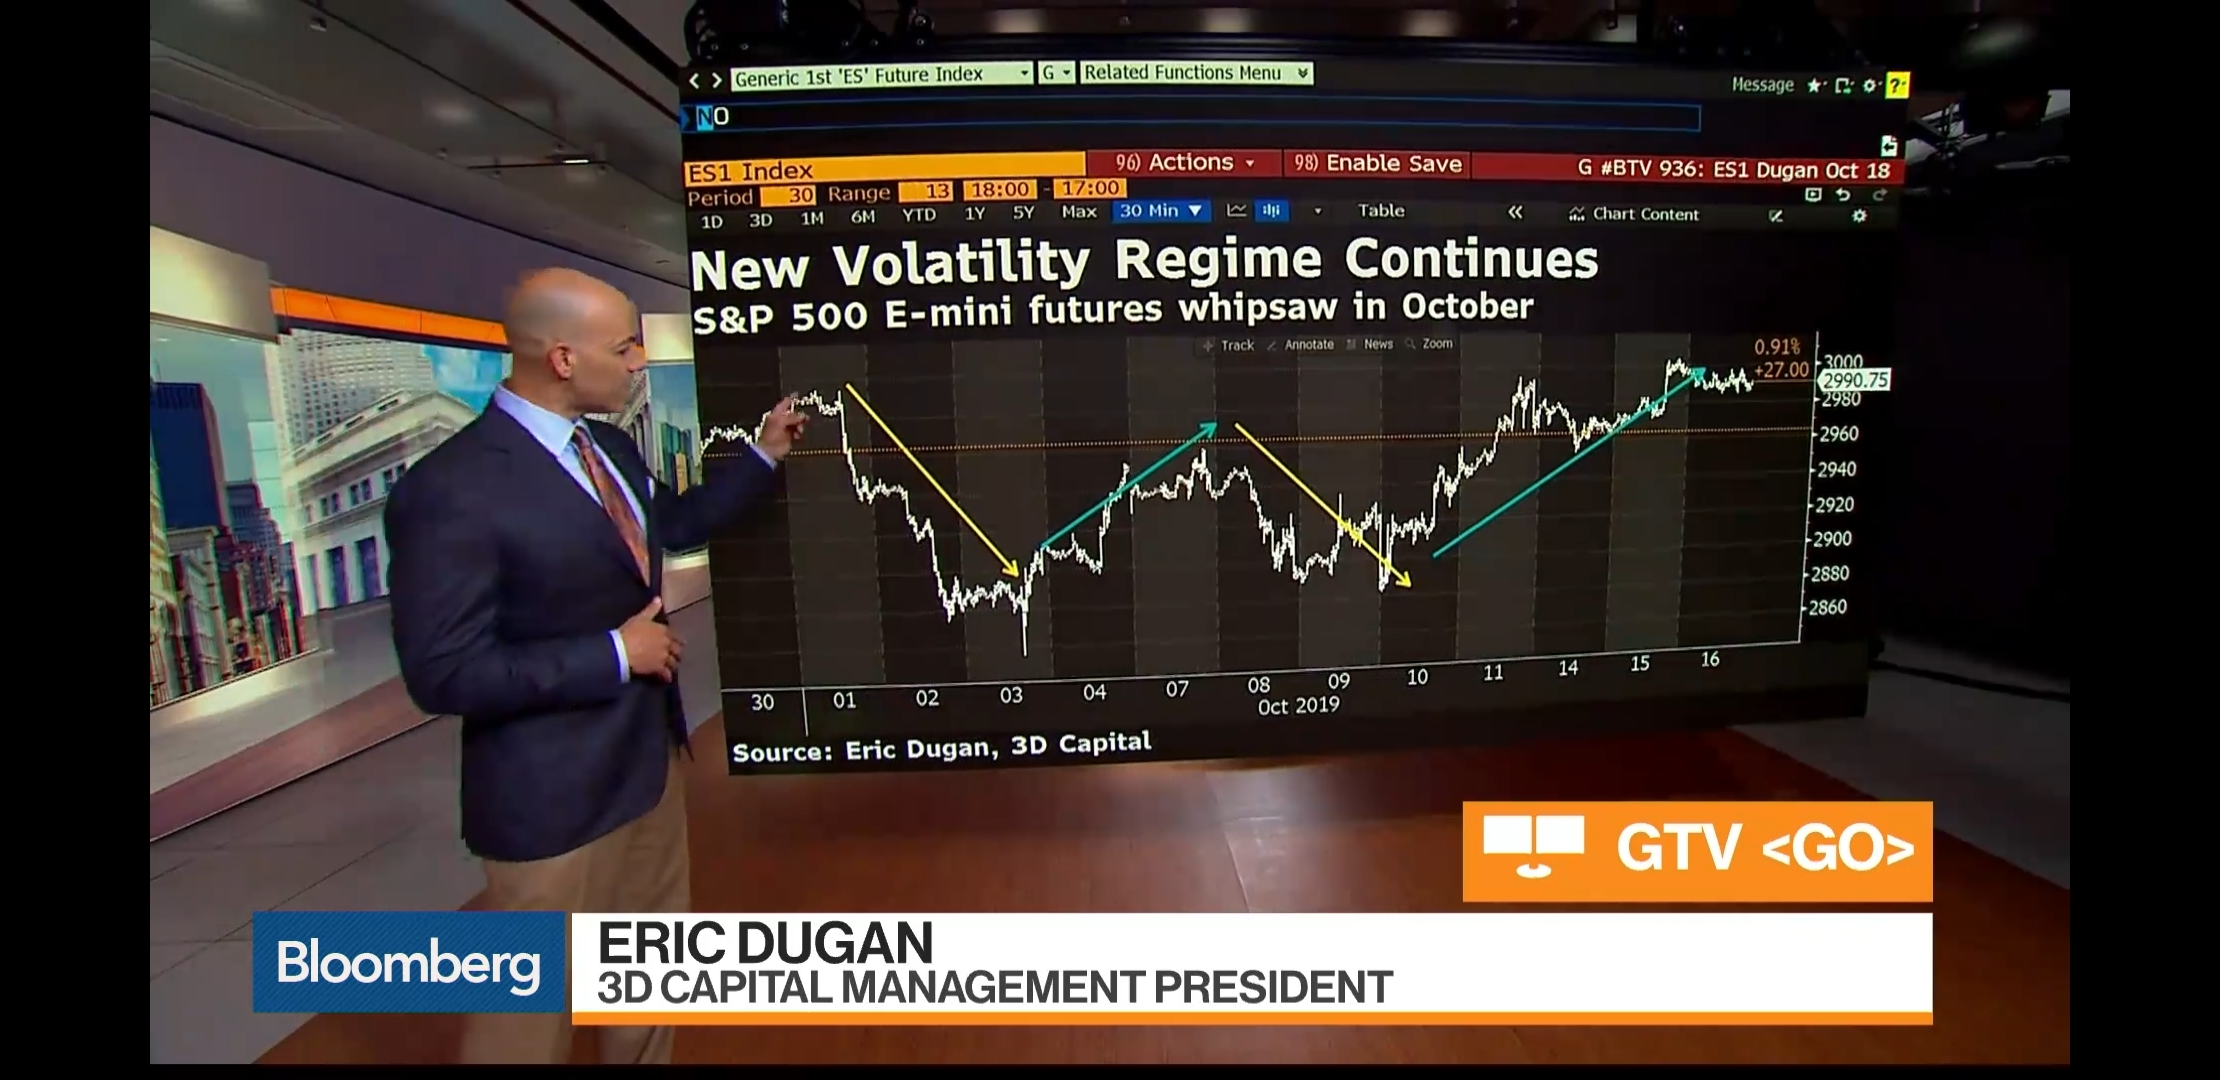 3D Capital Chairman and Portfolio Manager Eric Dugan explaining S&P 500 E-mini futures on Bloomberg TV on October 16, 2019.